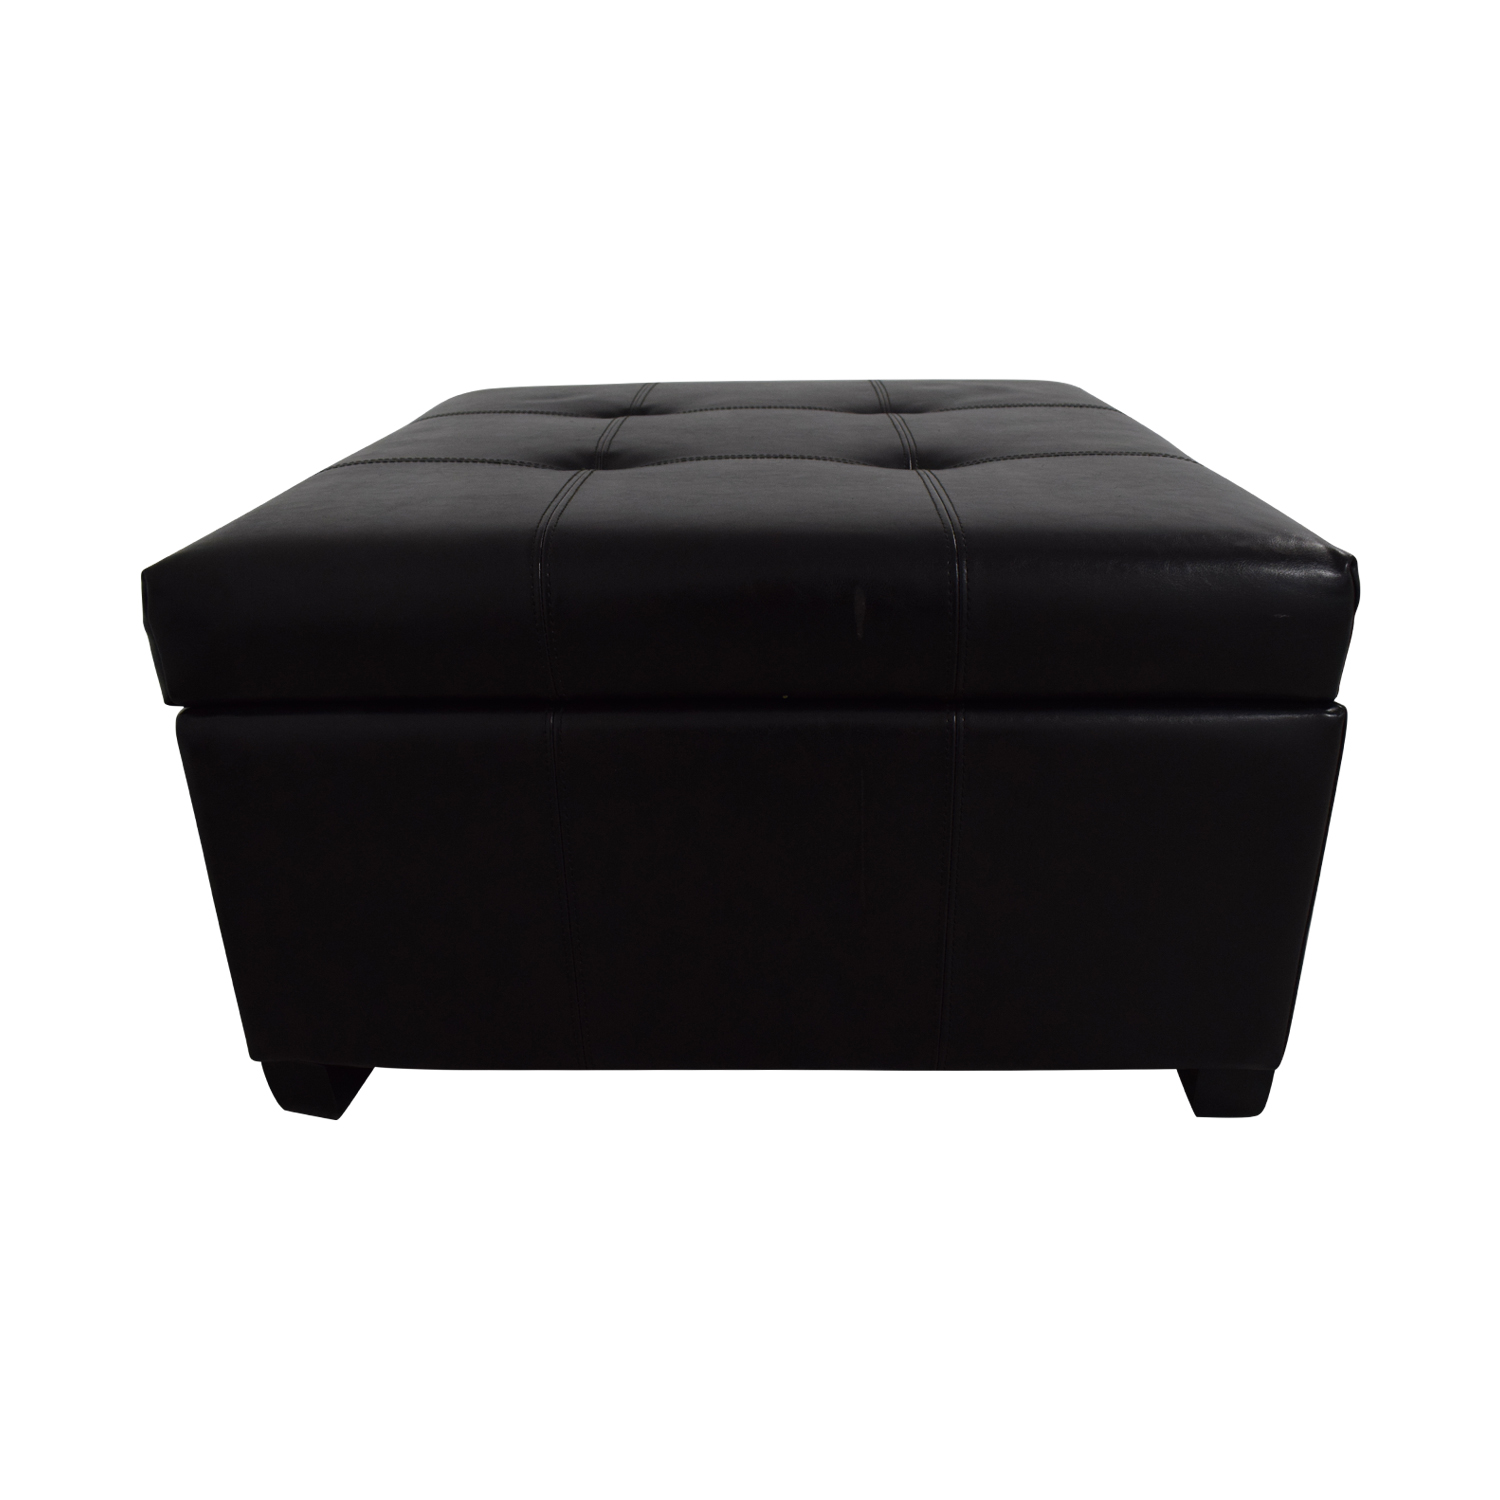 Tufted Storage Ottoman for sale